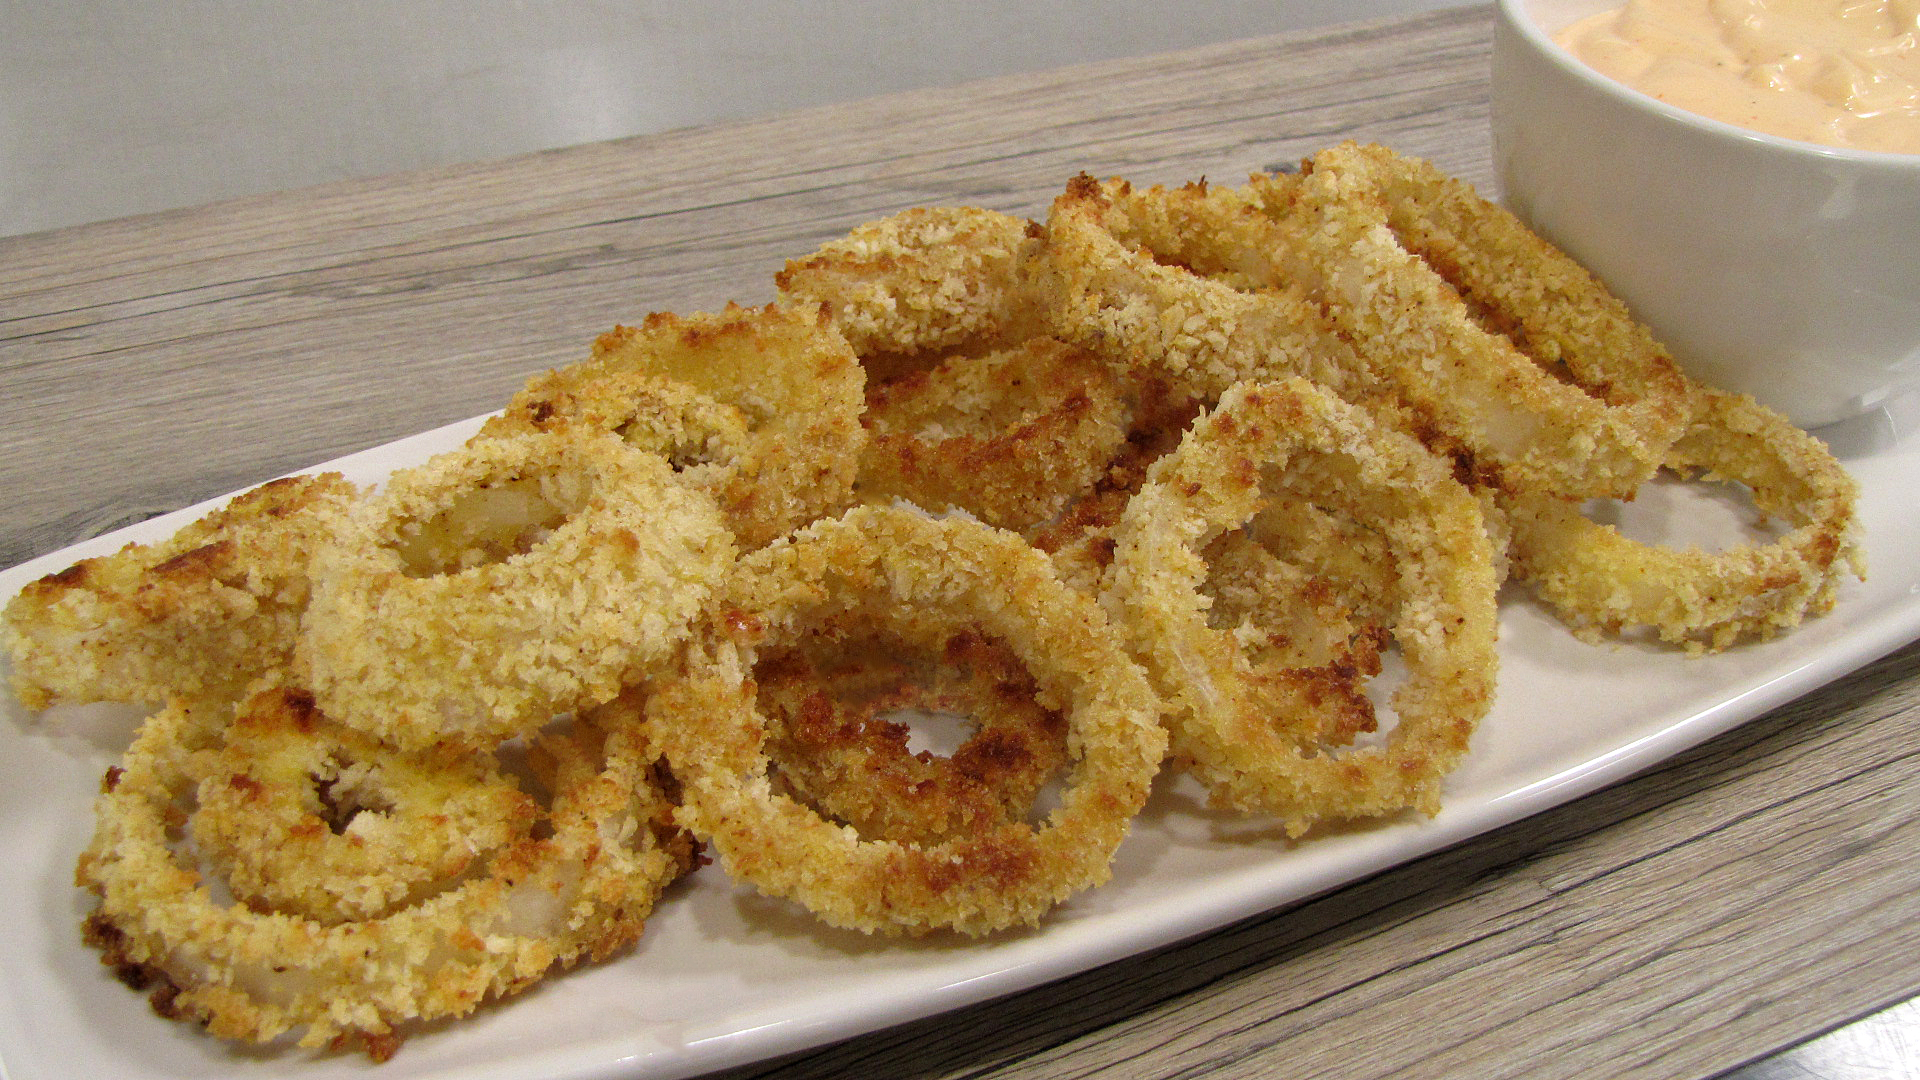 This recipe is a tasty way to use onions. (NDSU photo)